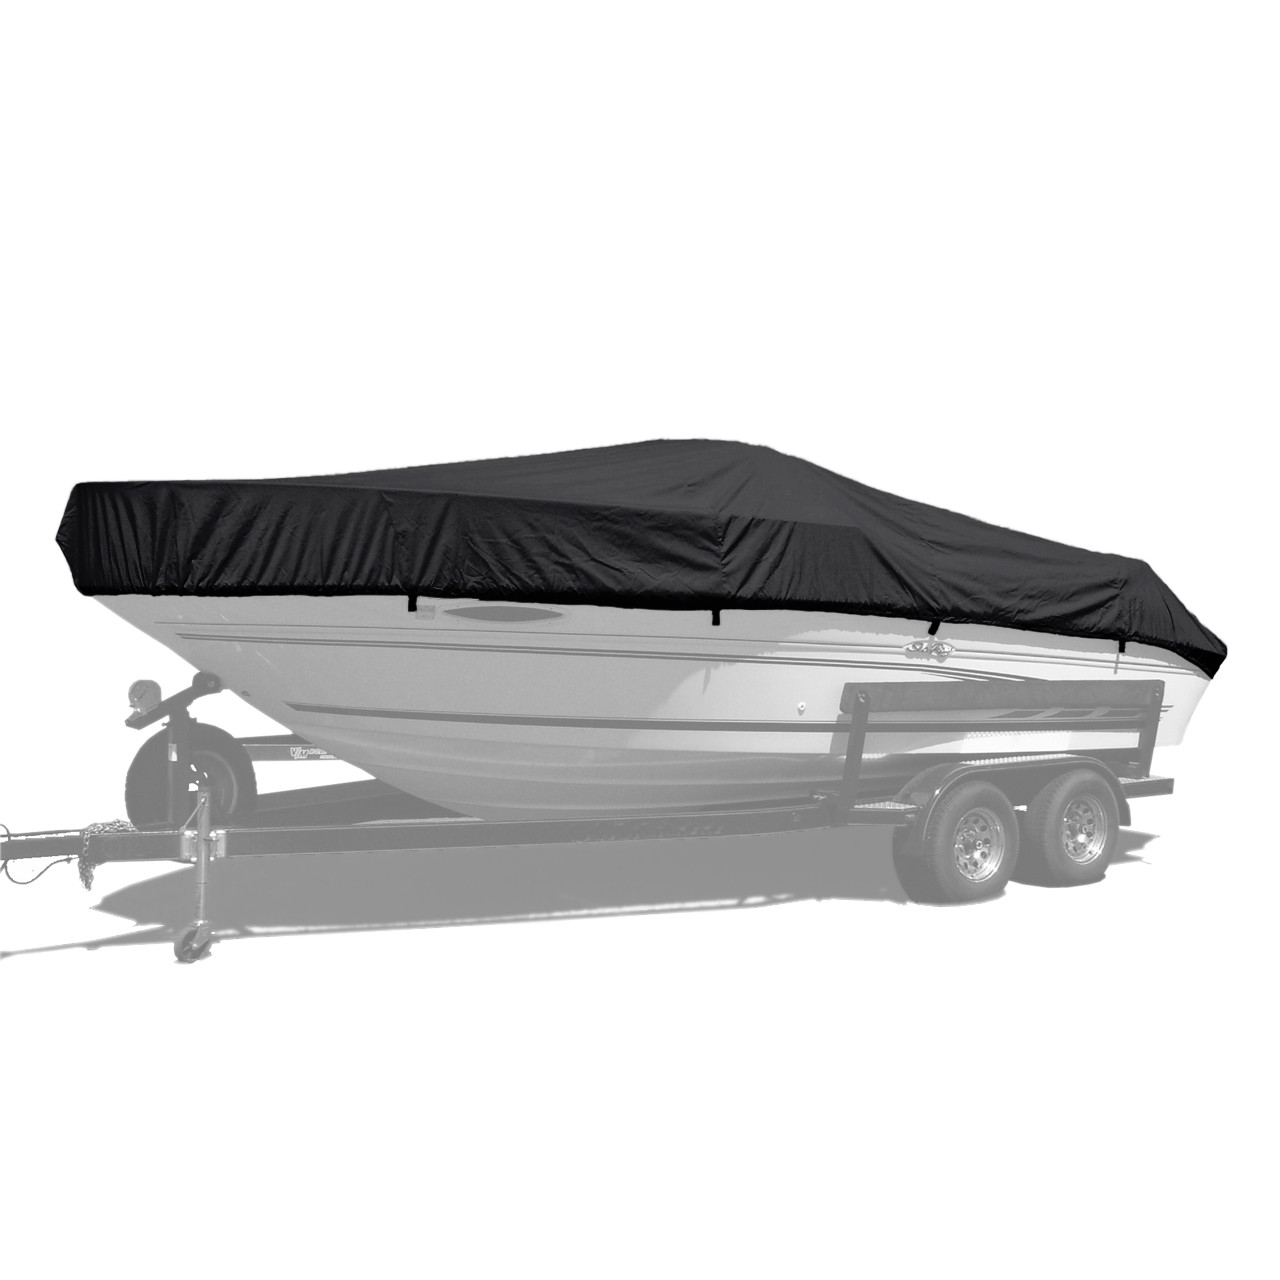 westland custom boat cover with jet black sunbrella fabric [ 1280 x 1280 Pixel ]